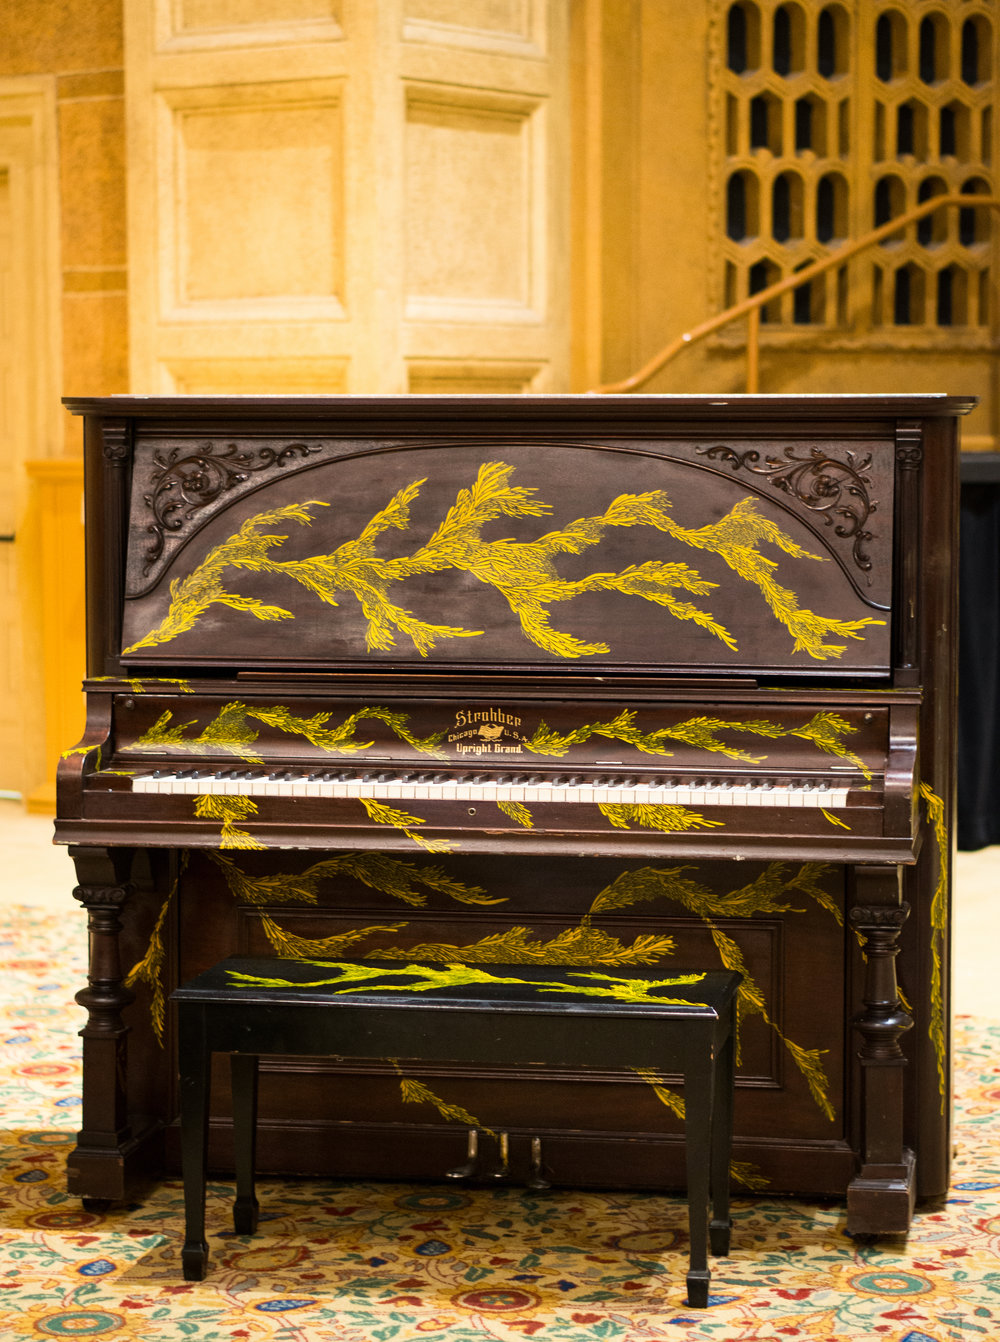 As part of Portland Art Museum's Piano Push Play Exhibit, Julianna adorned this vintage beauty. Now permanently on display and available to play at Brooklyn's Know Thy Food.